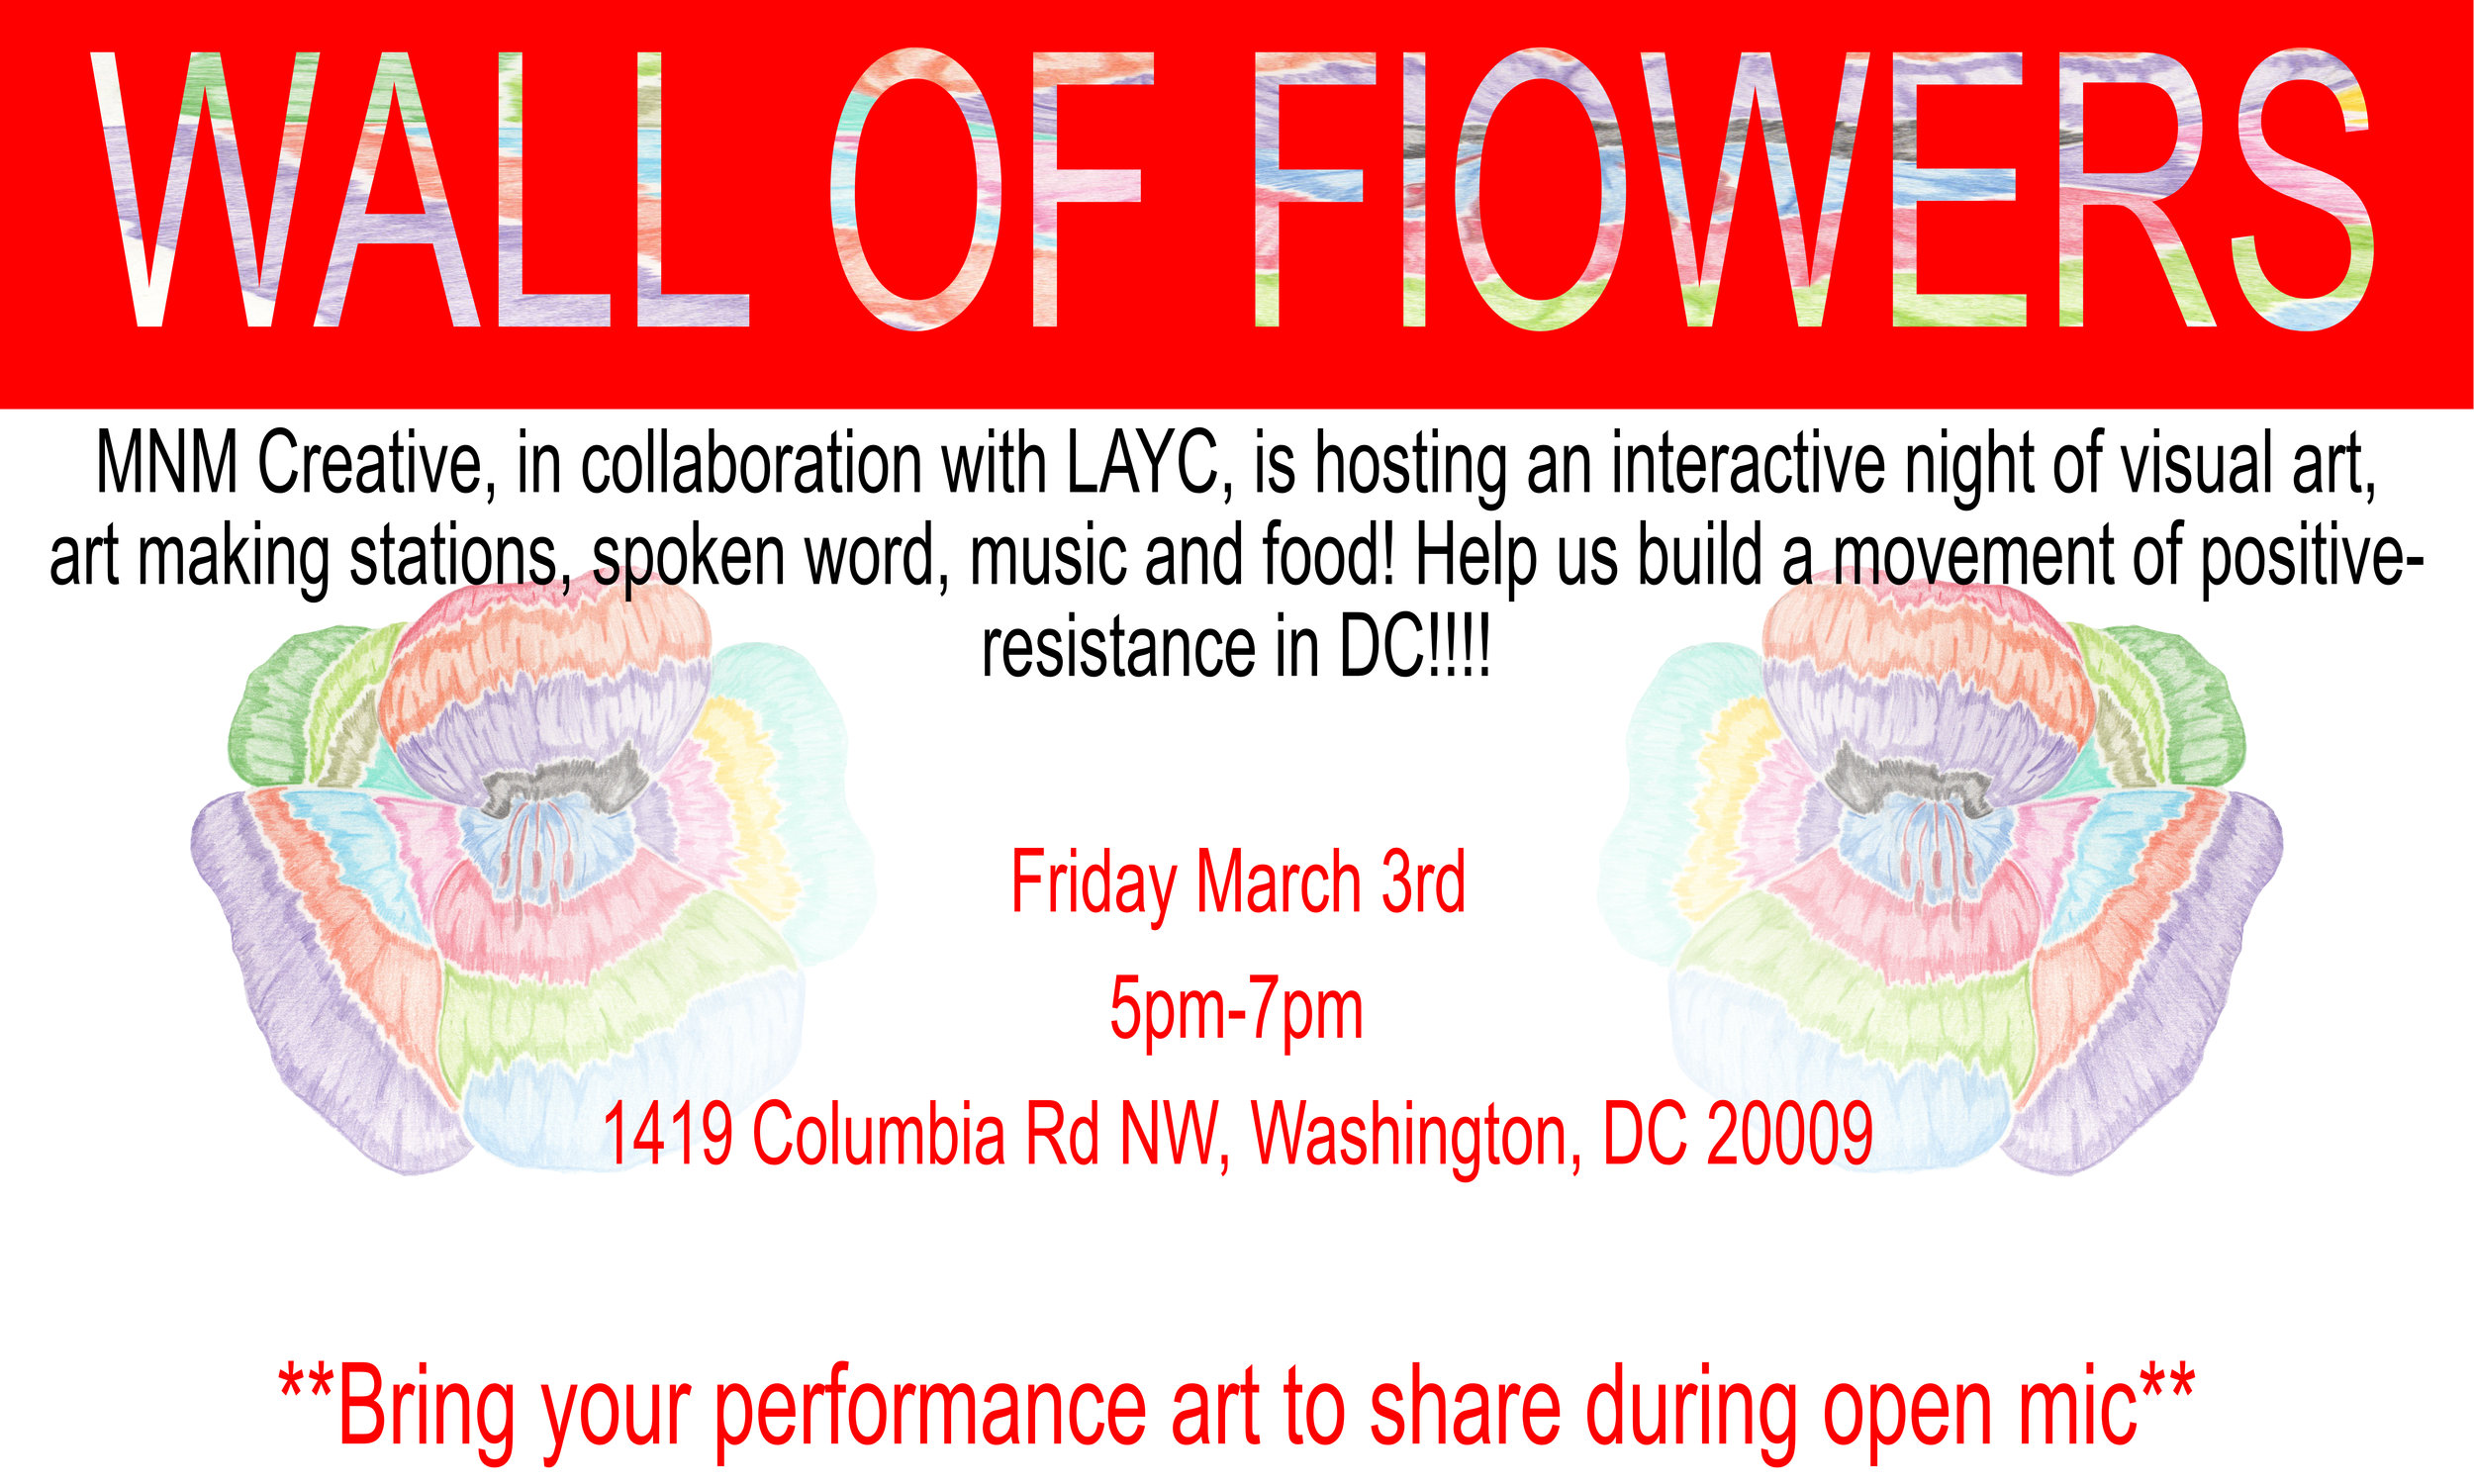 wall of flowers official event flyer  copy.jpg